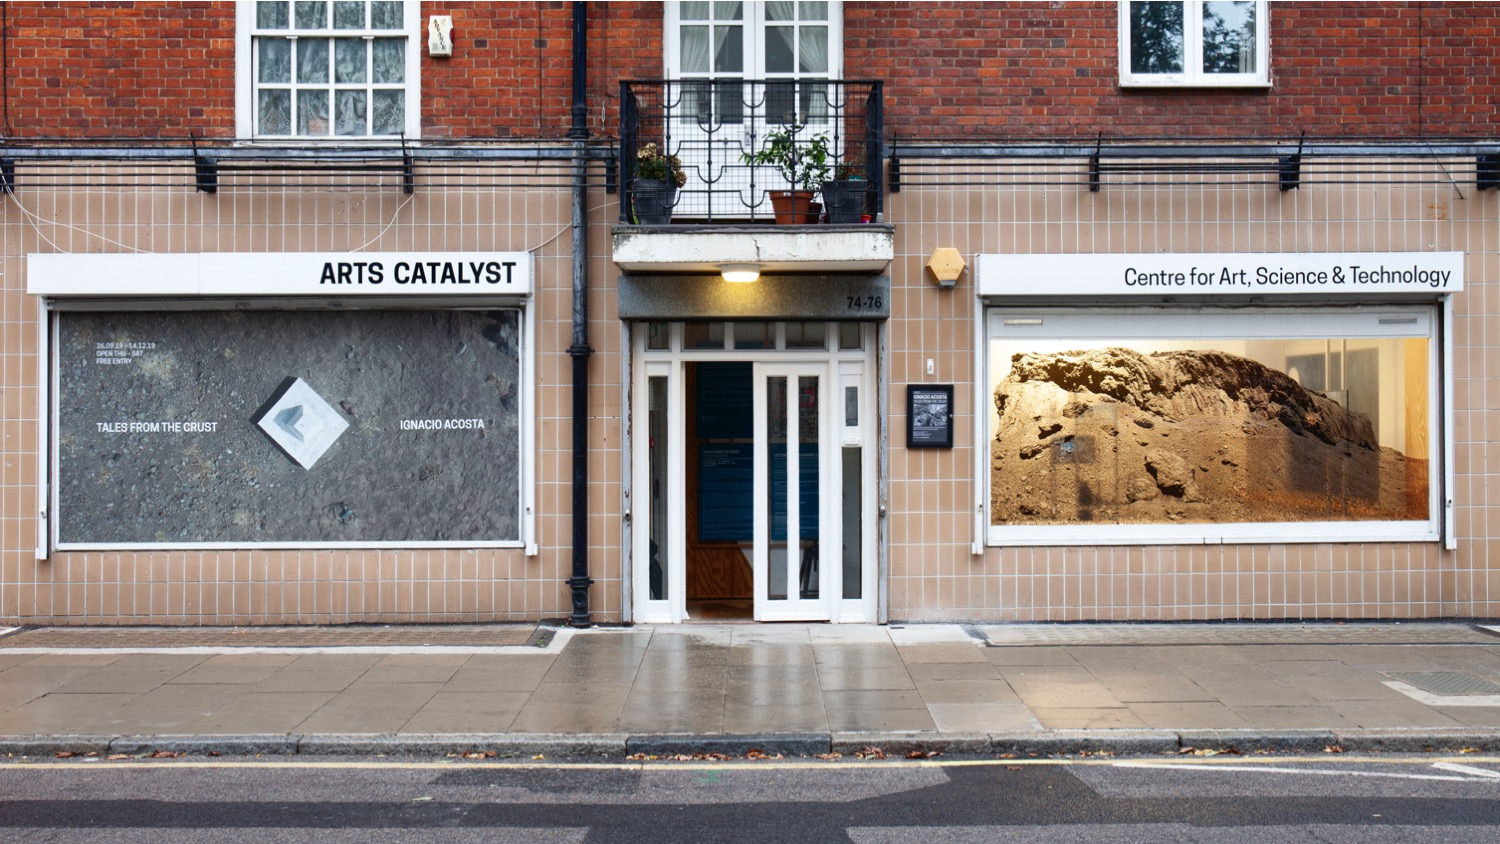 Installation view. Tales from the Crust, Arts Catalyst, London, 2019